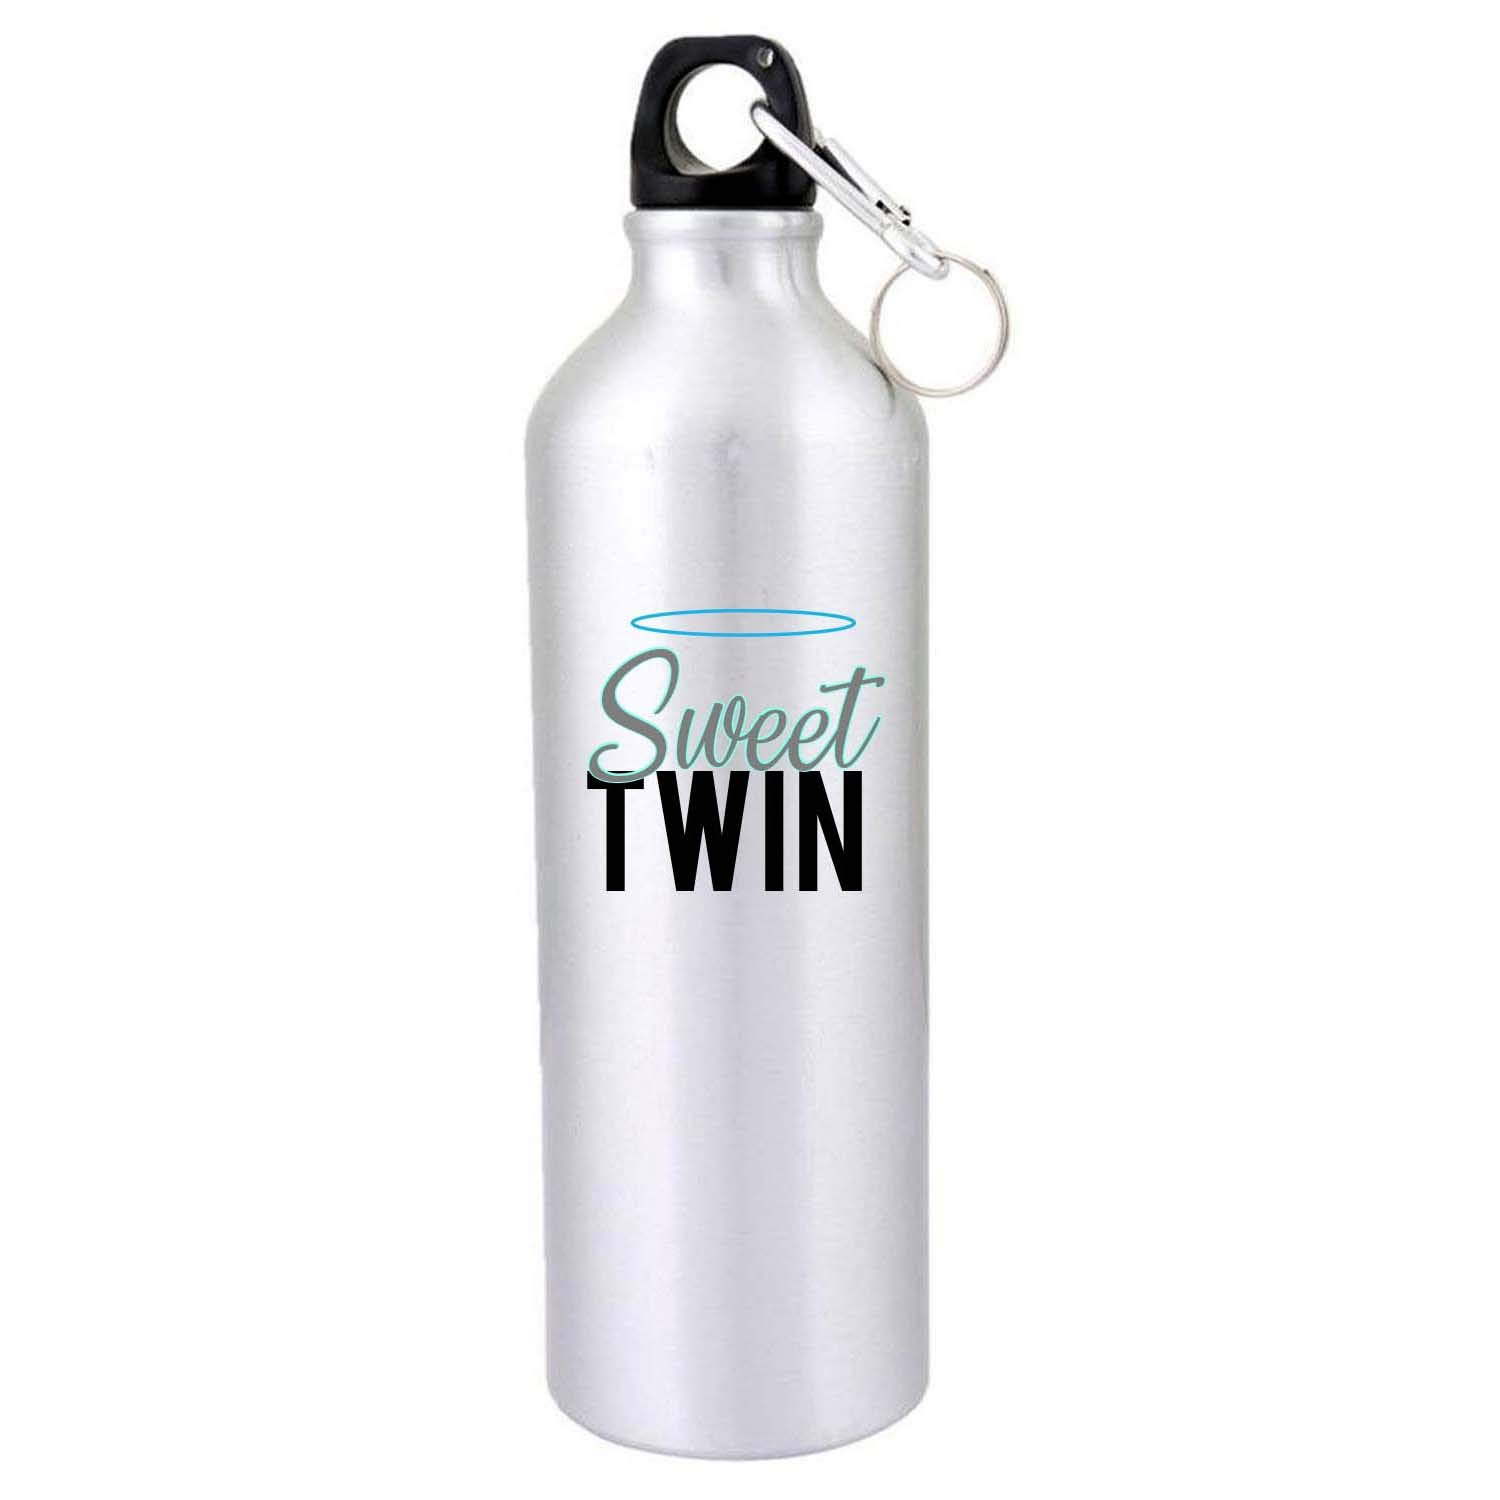 Buy Designer Panda Gifts For Twin Brothers Sisters Sweet Naughty Printed Sipper Water Bottles Gym And Travel Birthday Twins White